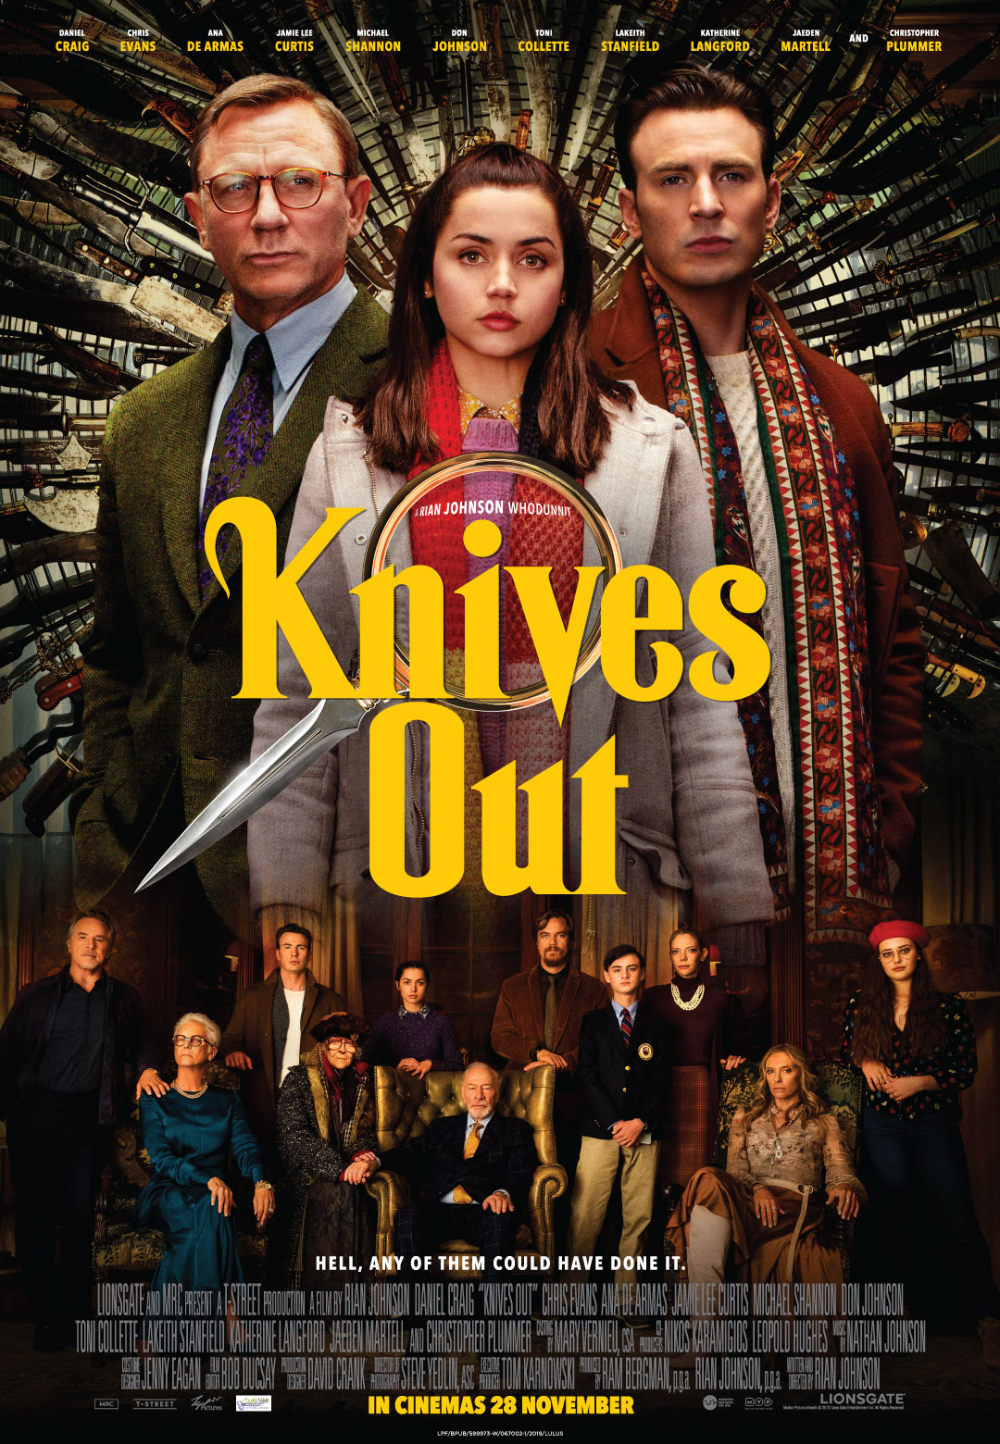 Knives Out A fun twisty film that I enjoyed from start